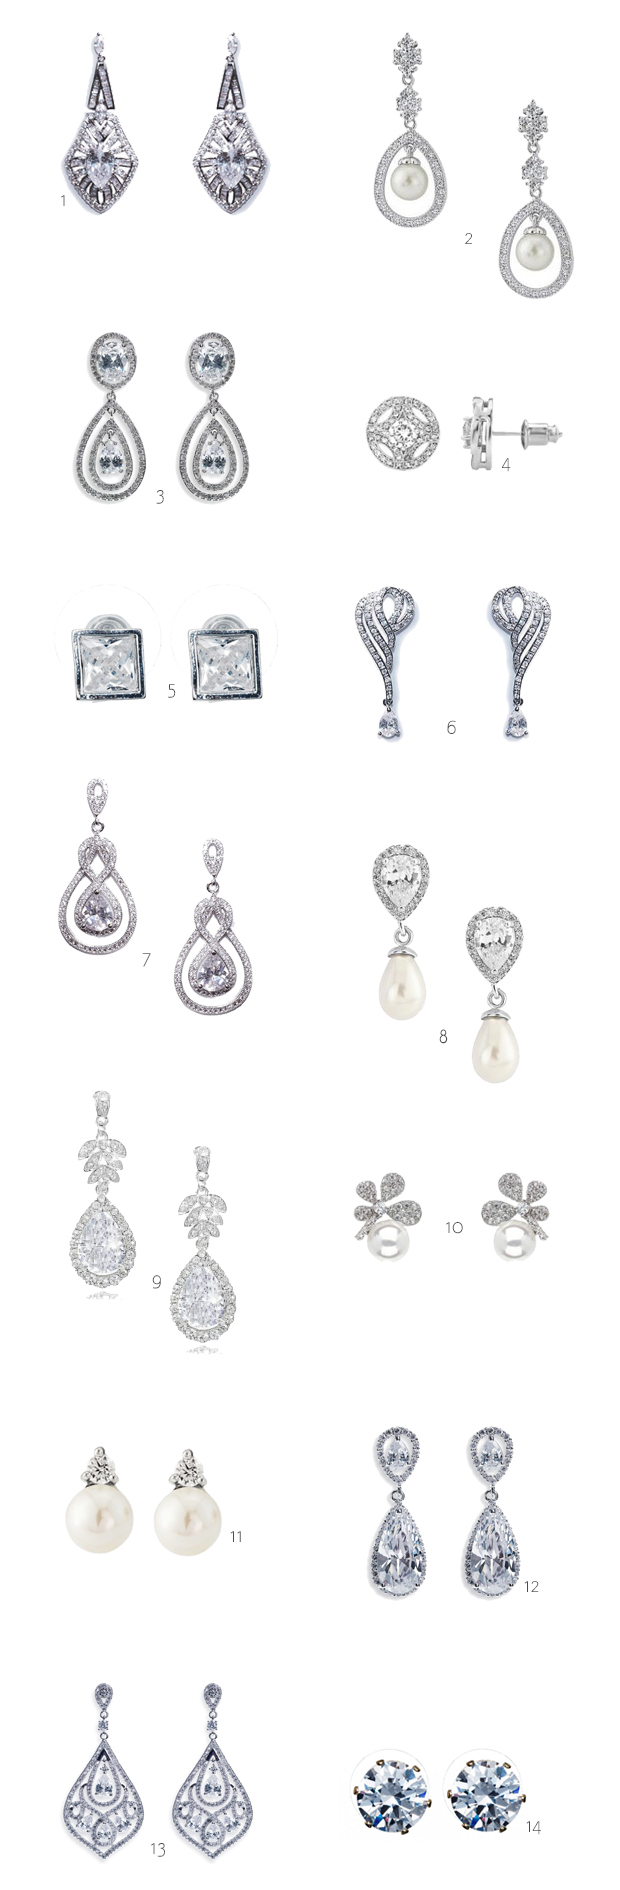 14 Beautiful Earrings for Brides